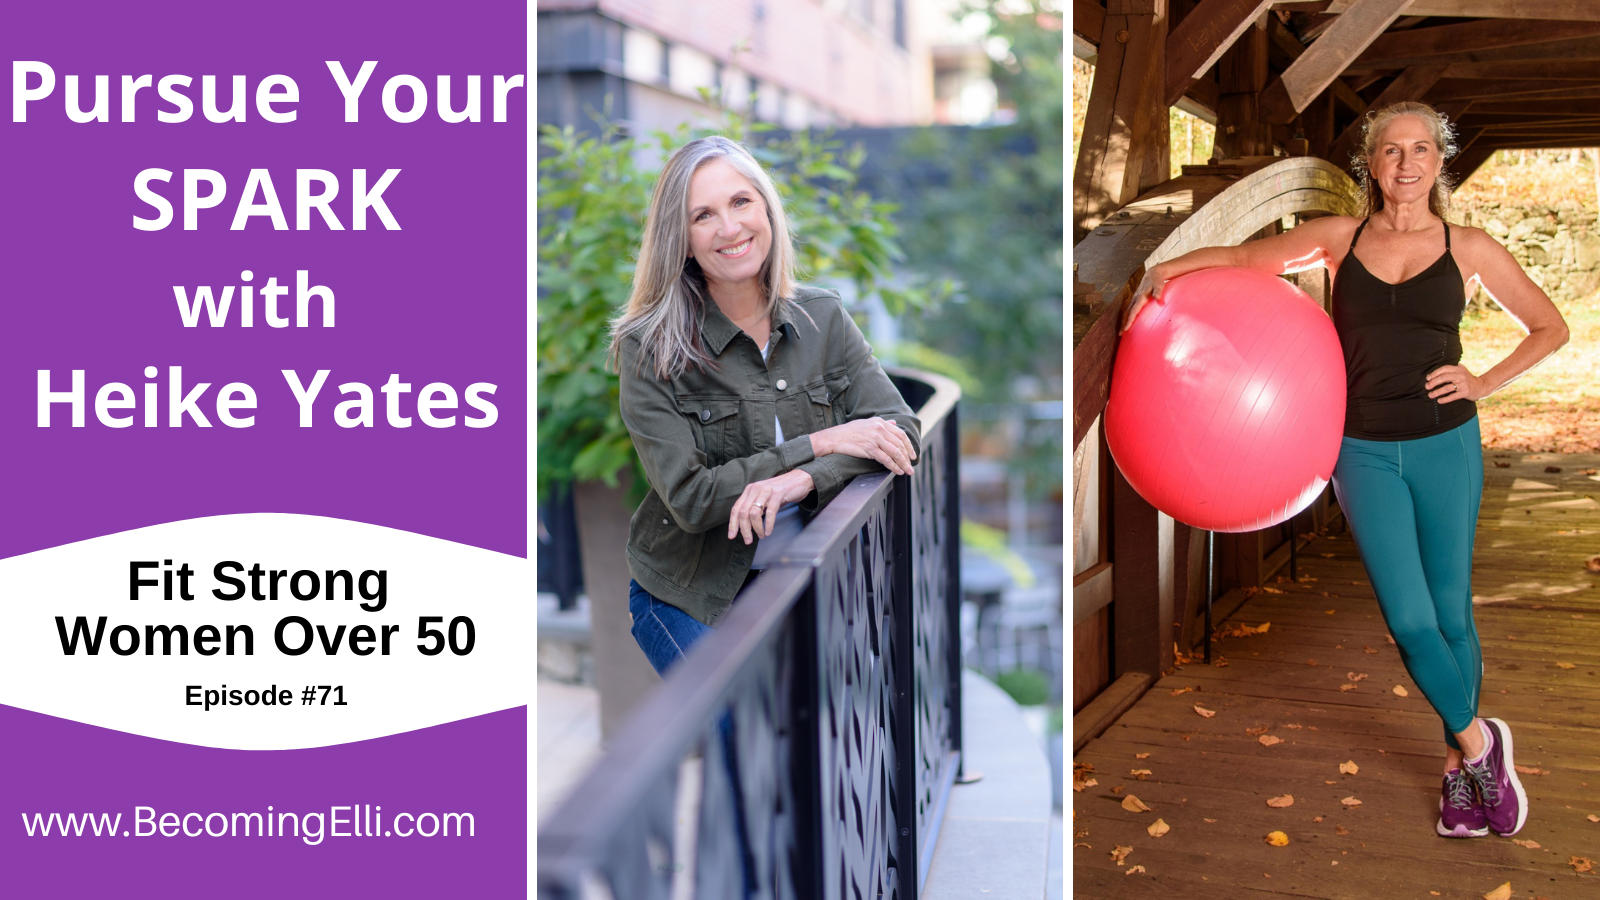 Pursue Your Spark with Heike Yates